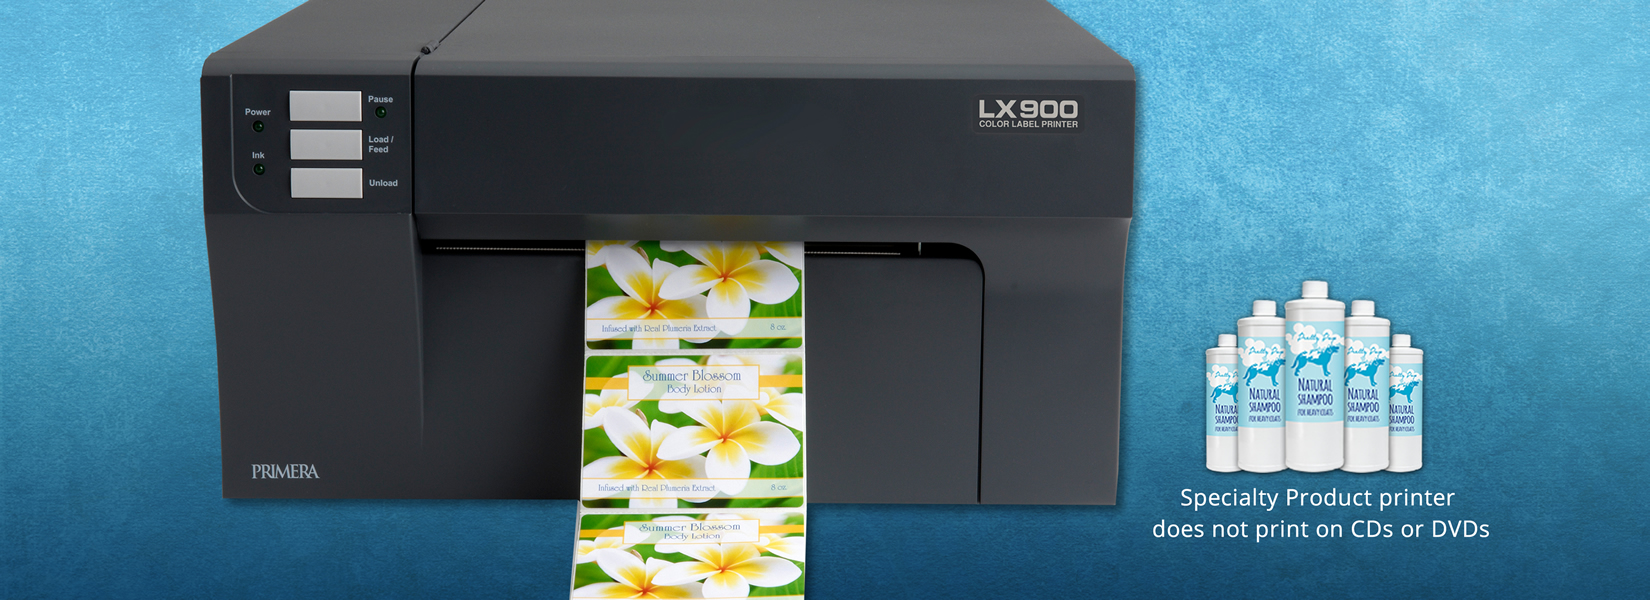 LX900 Color Label Printer